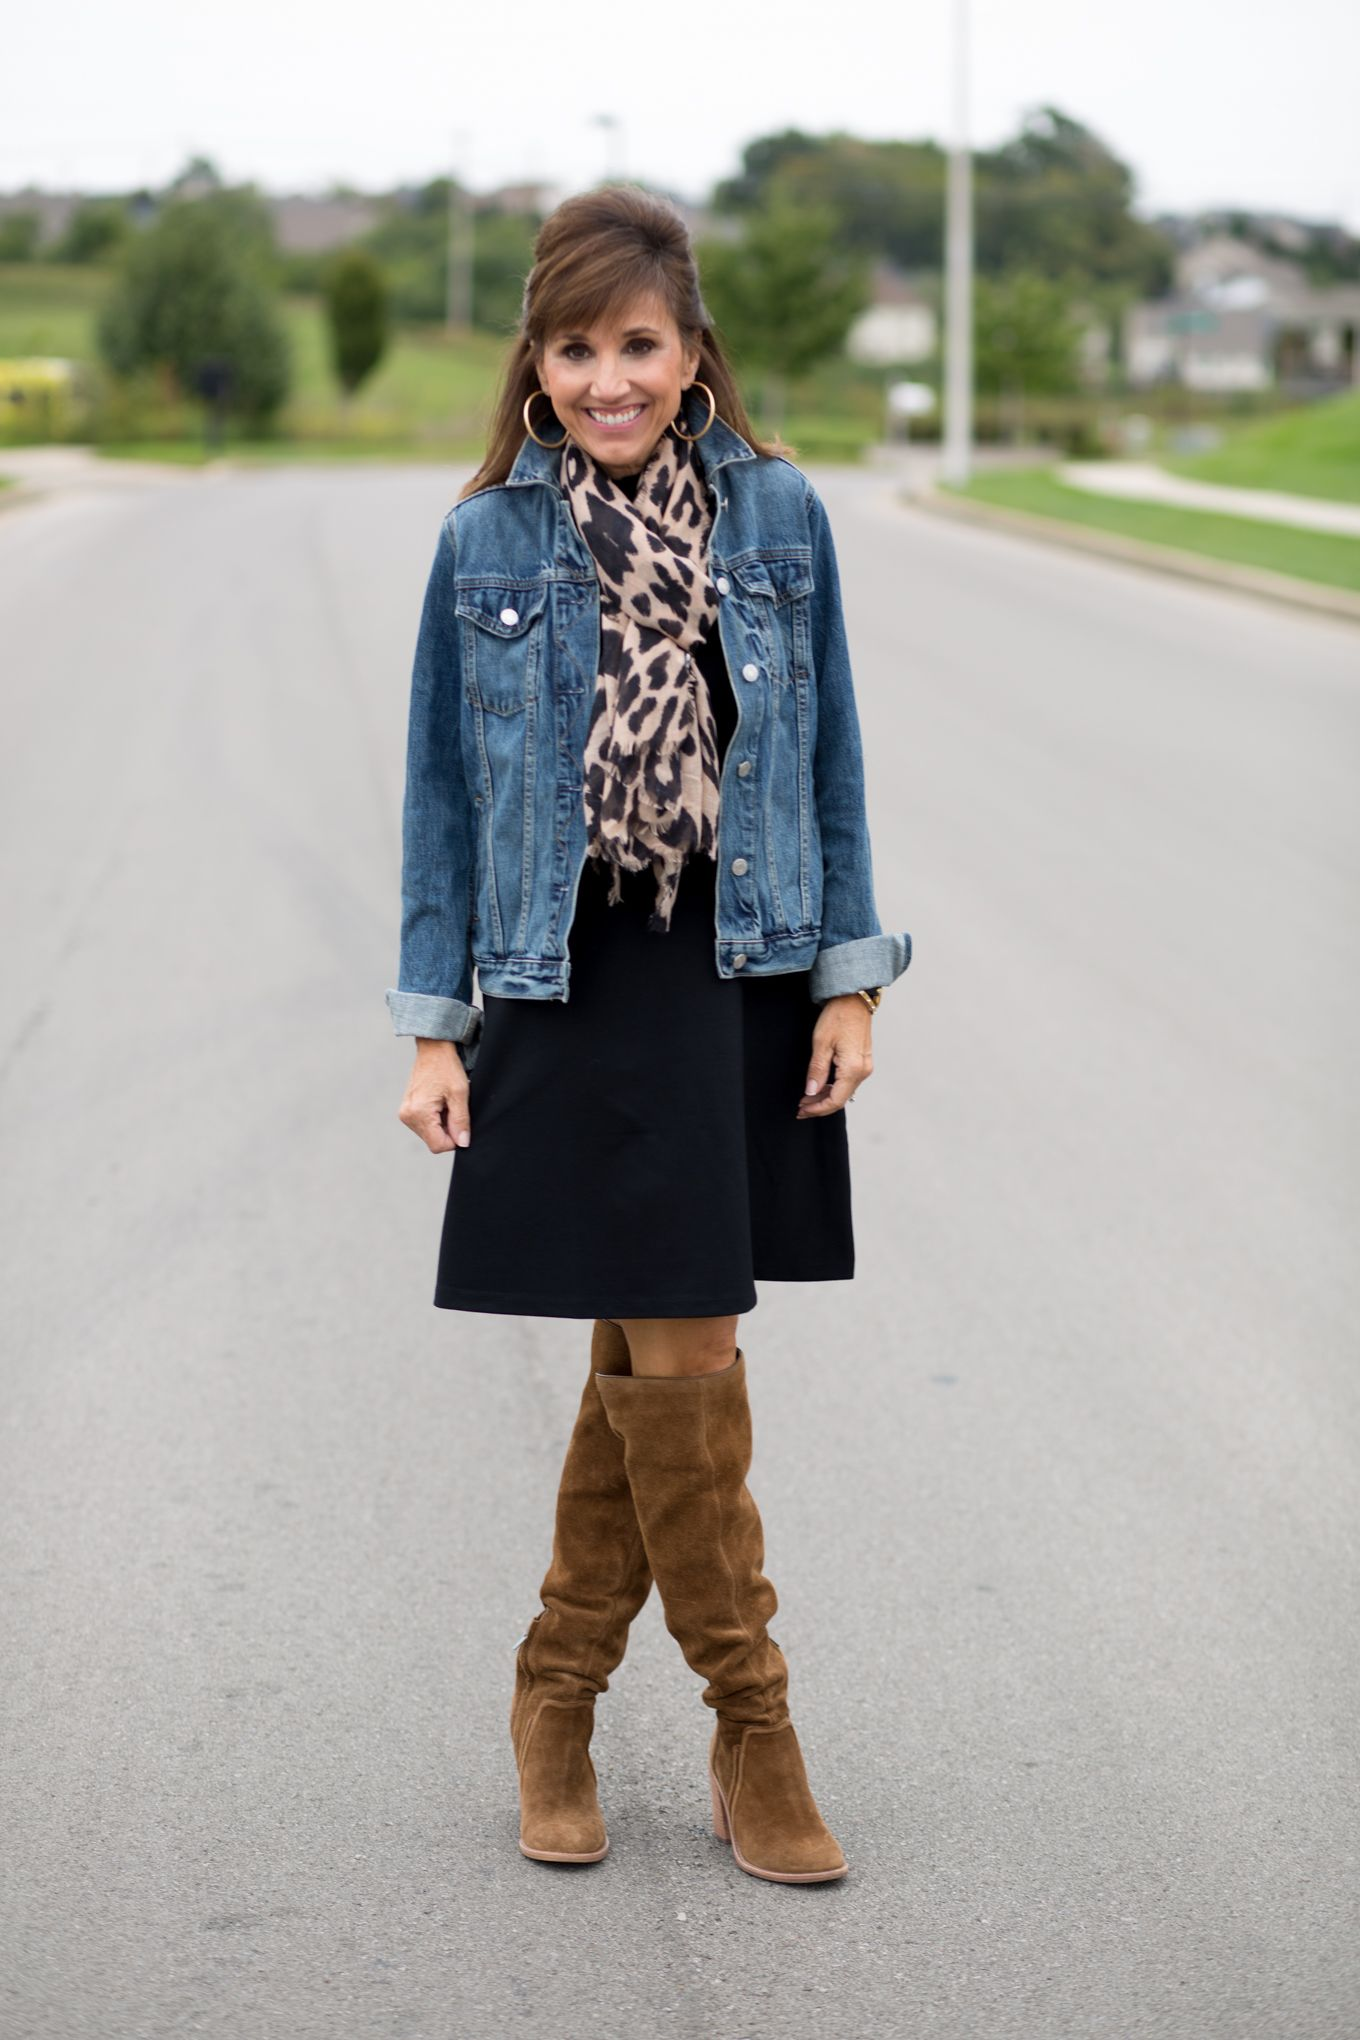 d6fdfdf3fc2 How To Style a Sleeveless Black Dress for Fall